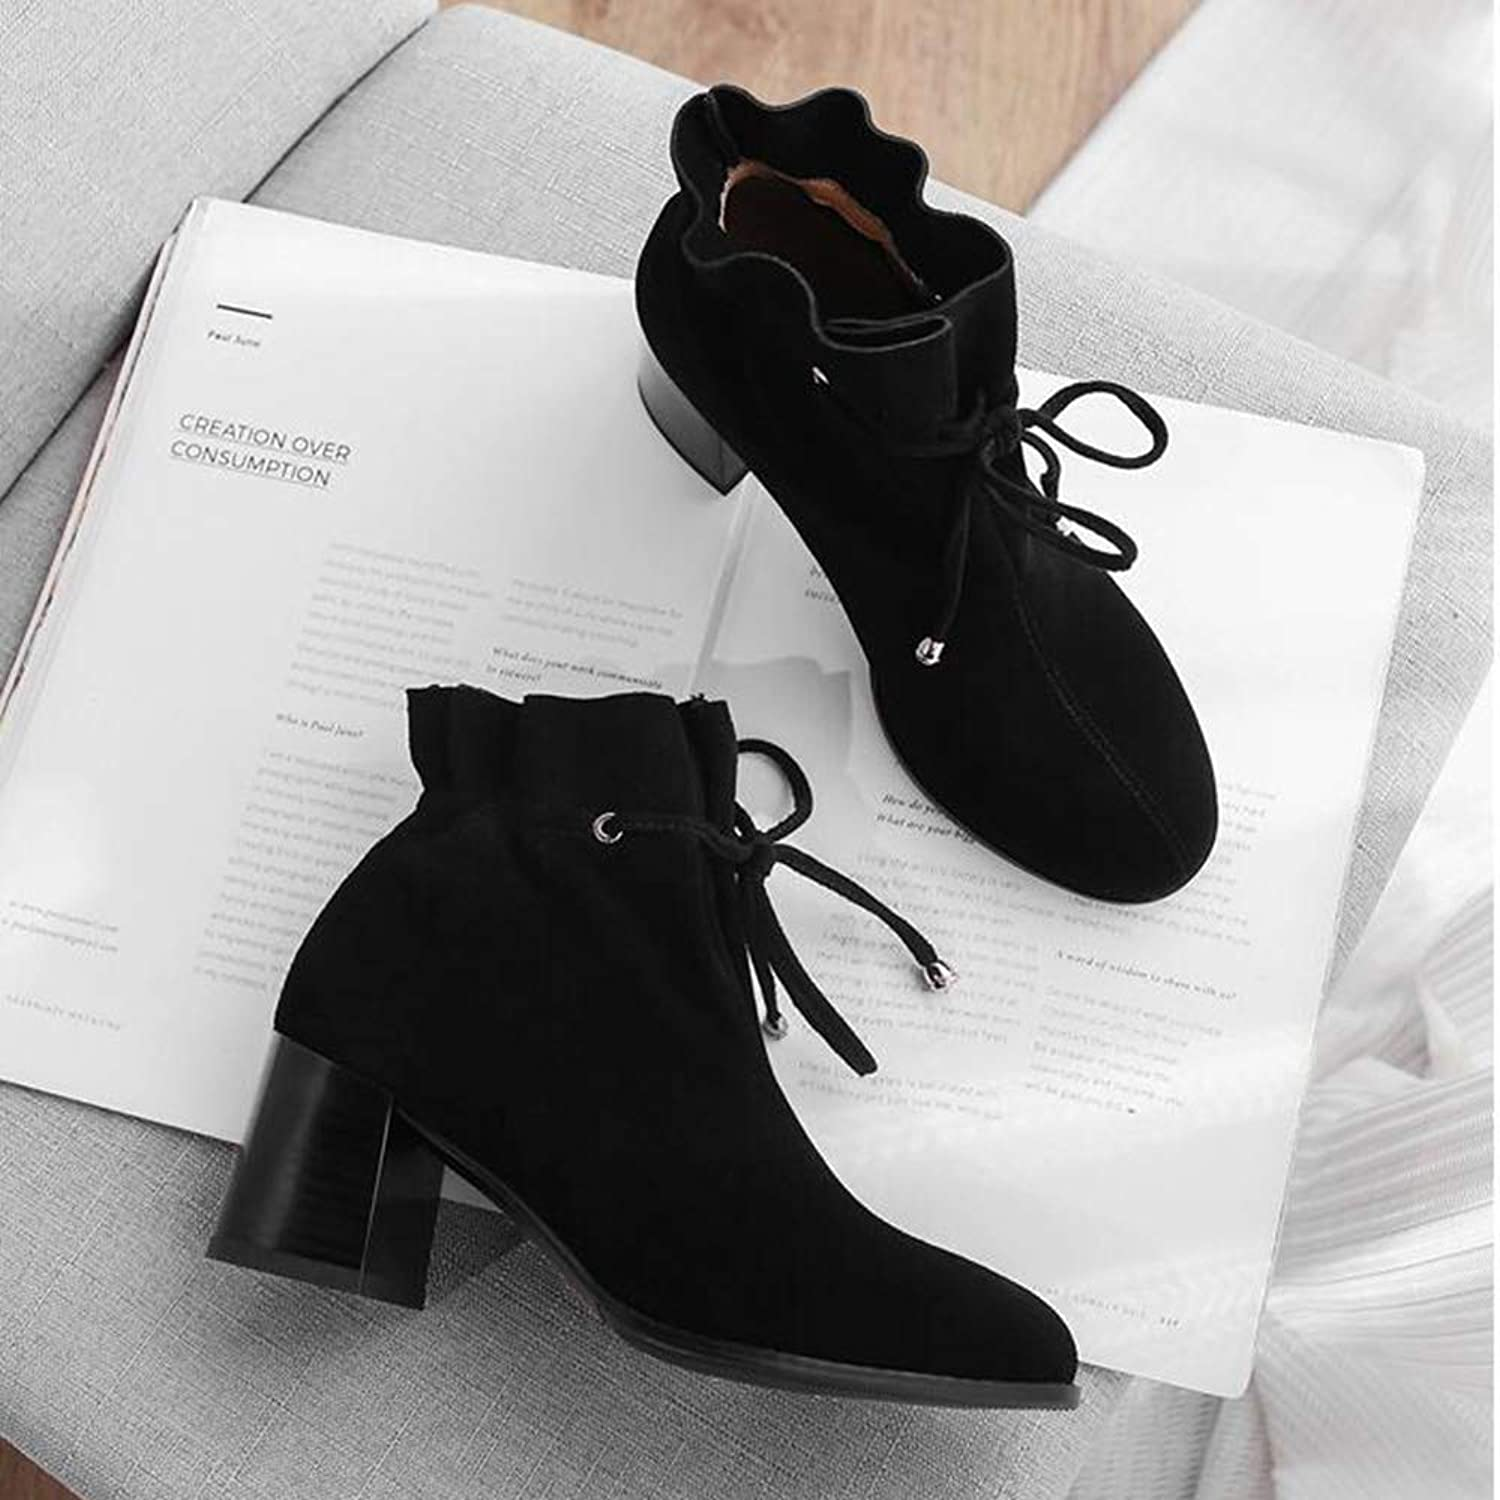 Xiaolin shoes Women's Low Heel Western Martin Boots Lace High Heel Ankle Boots Fashion Women's Boots (color   B, Size   US5 EU35 UK3 CN34)